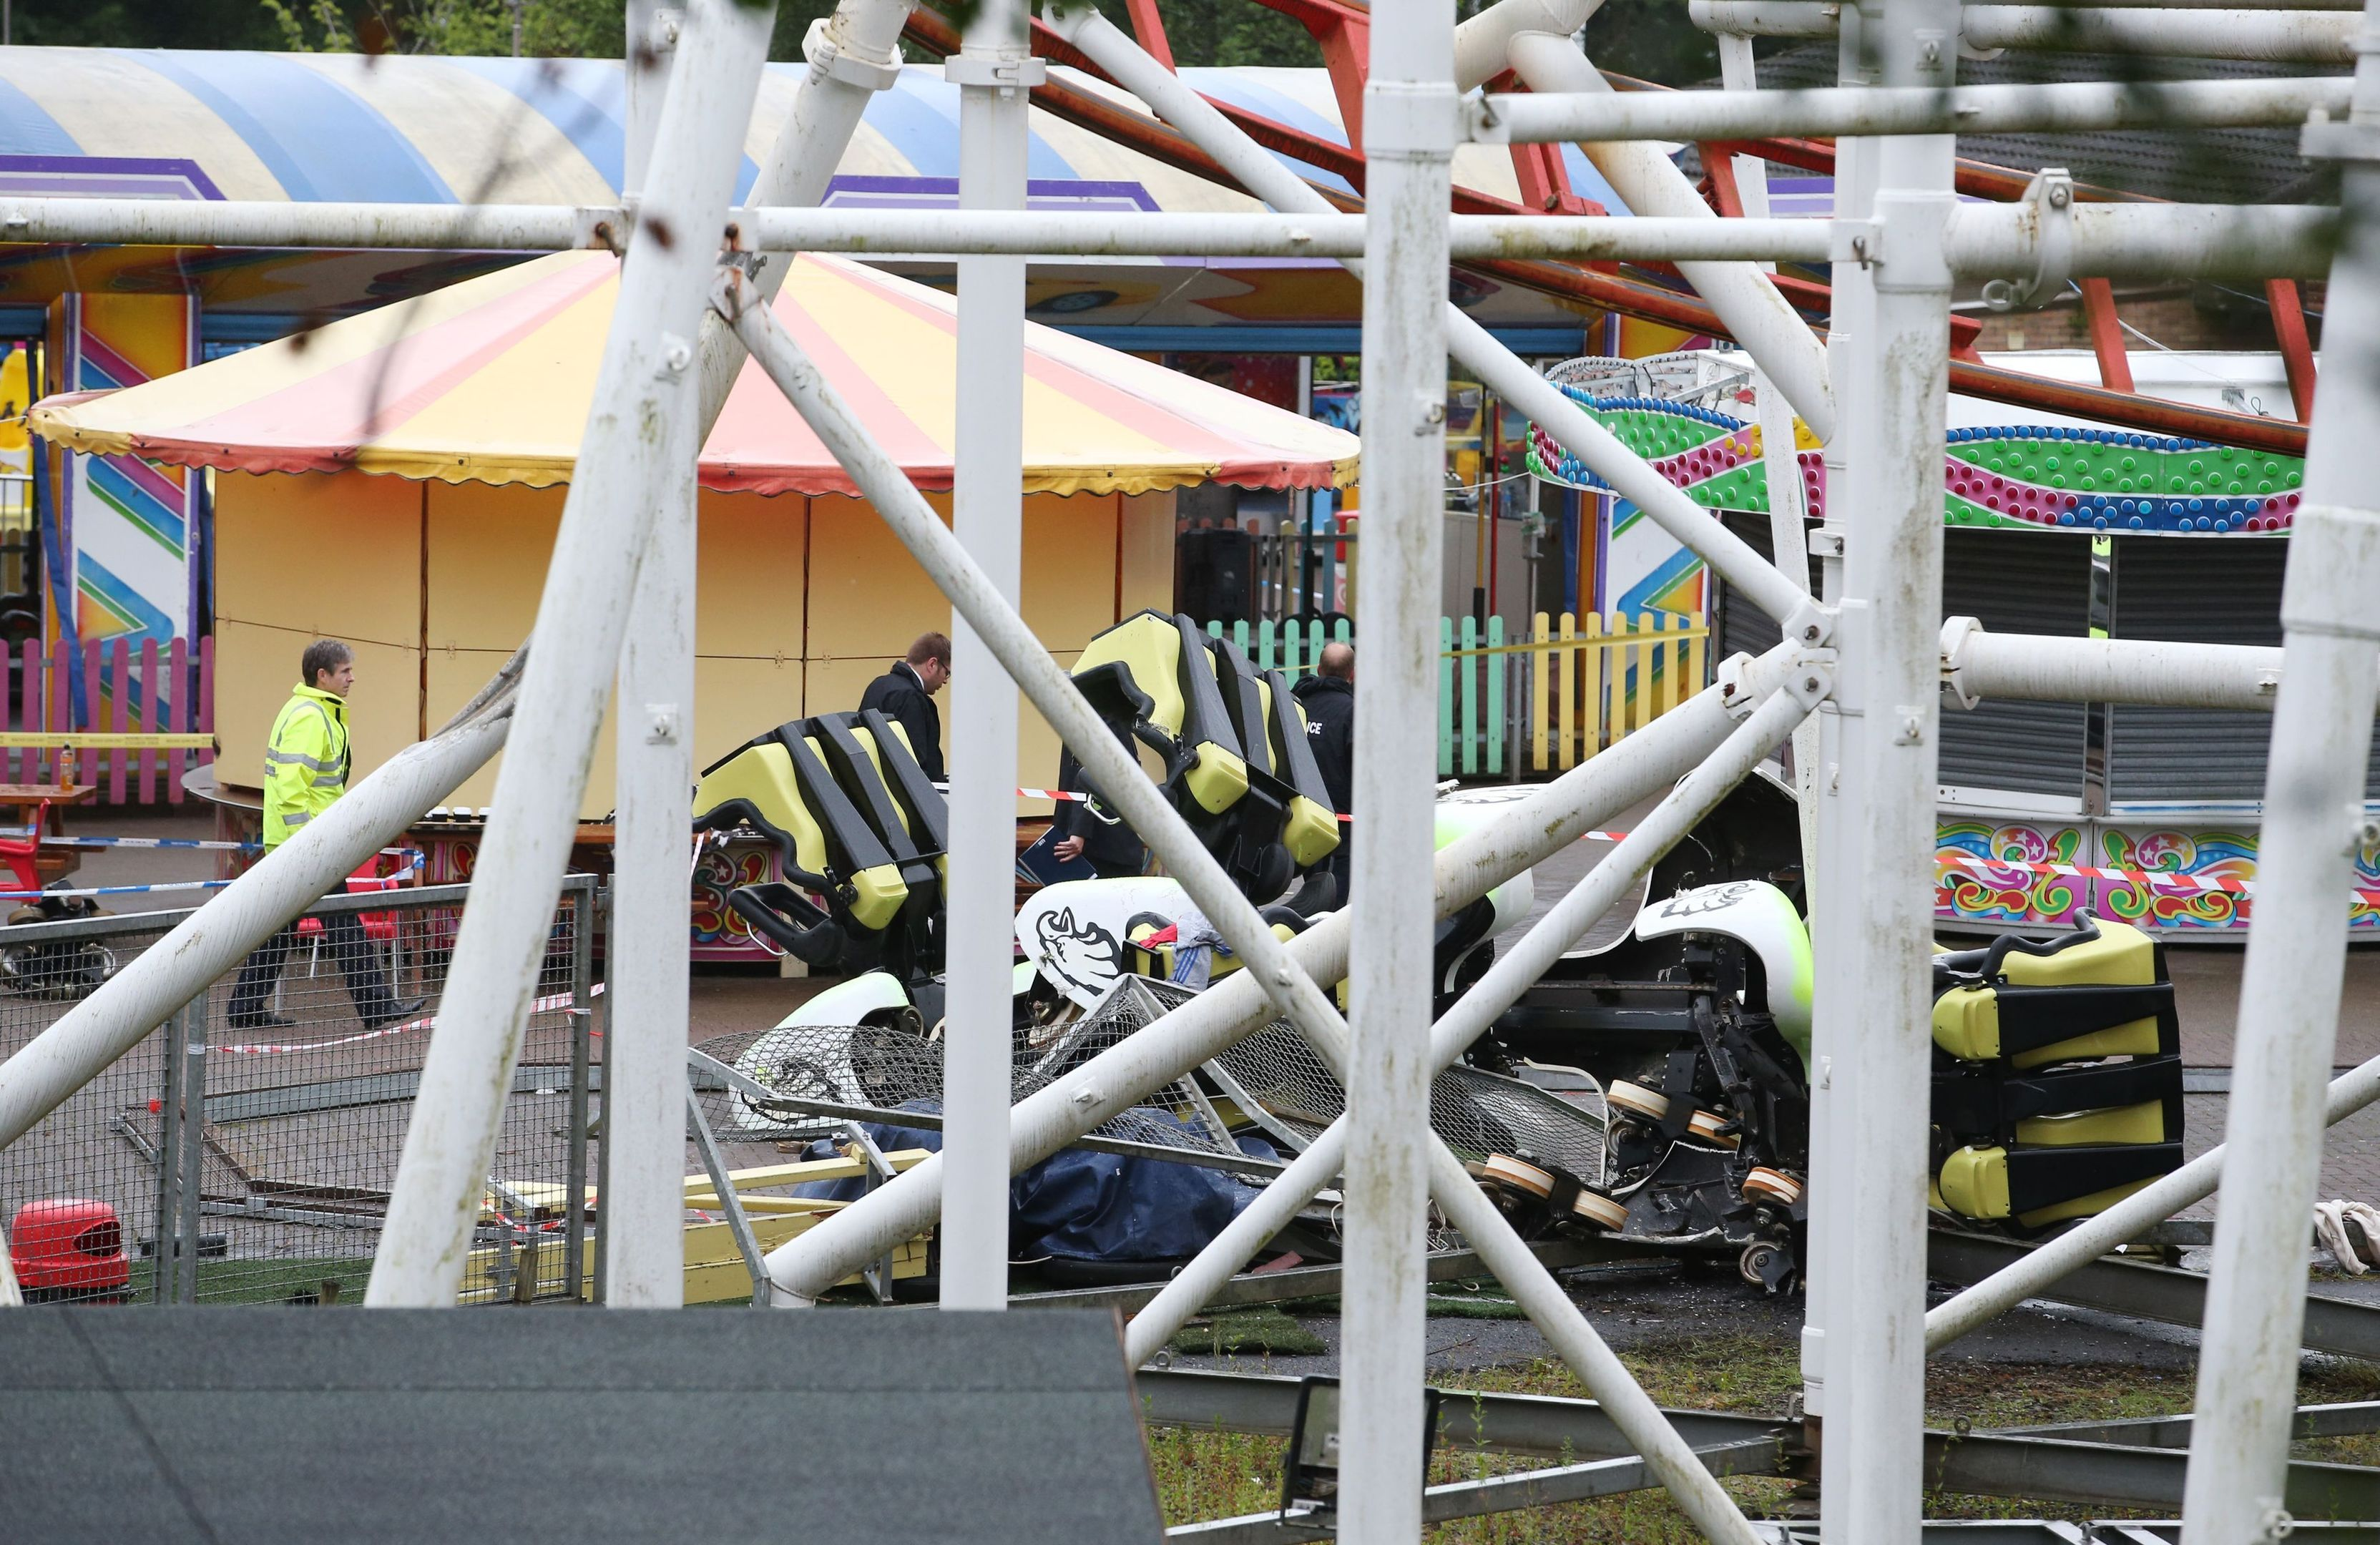 Mangled wreckage at M&D's amusement park in Motherwell, after the Tsunami rollercoaster derailed.